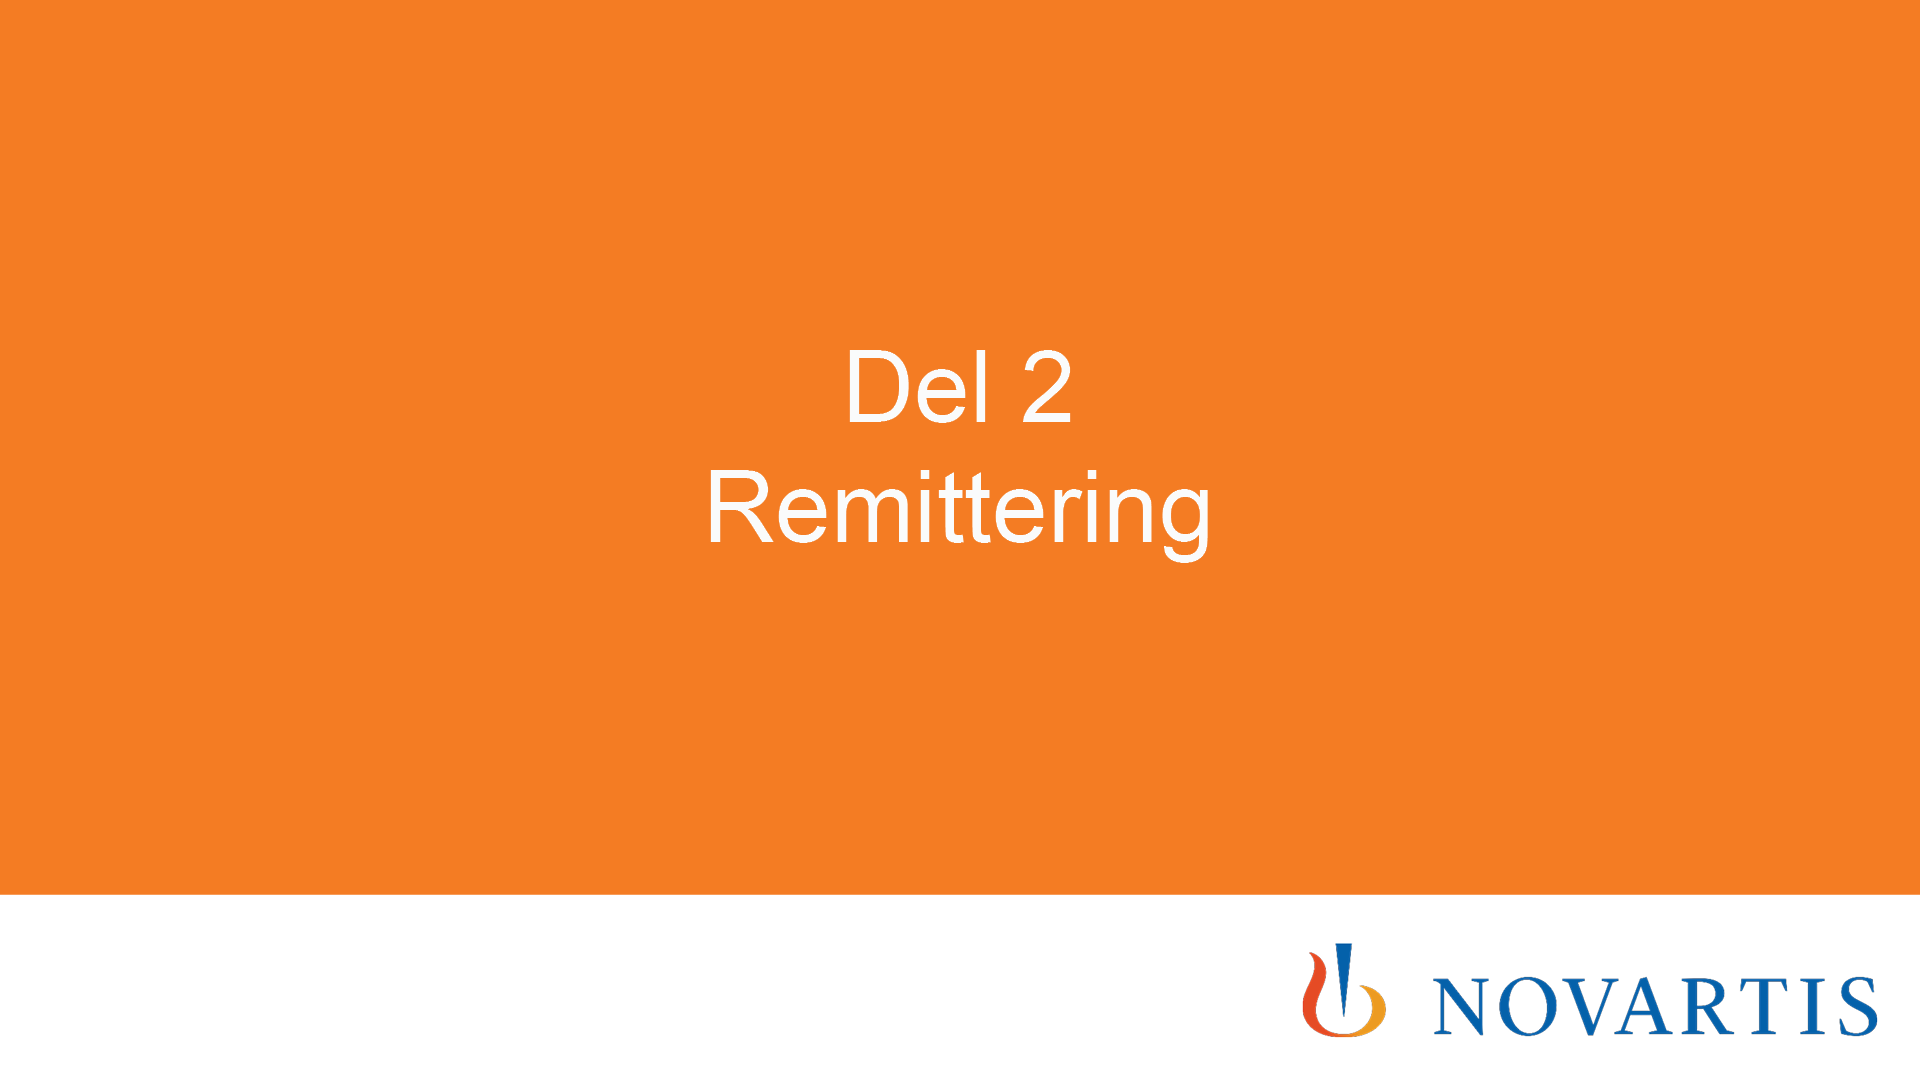 Del 2: Remittering